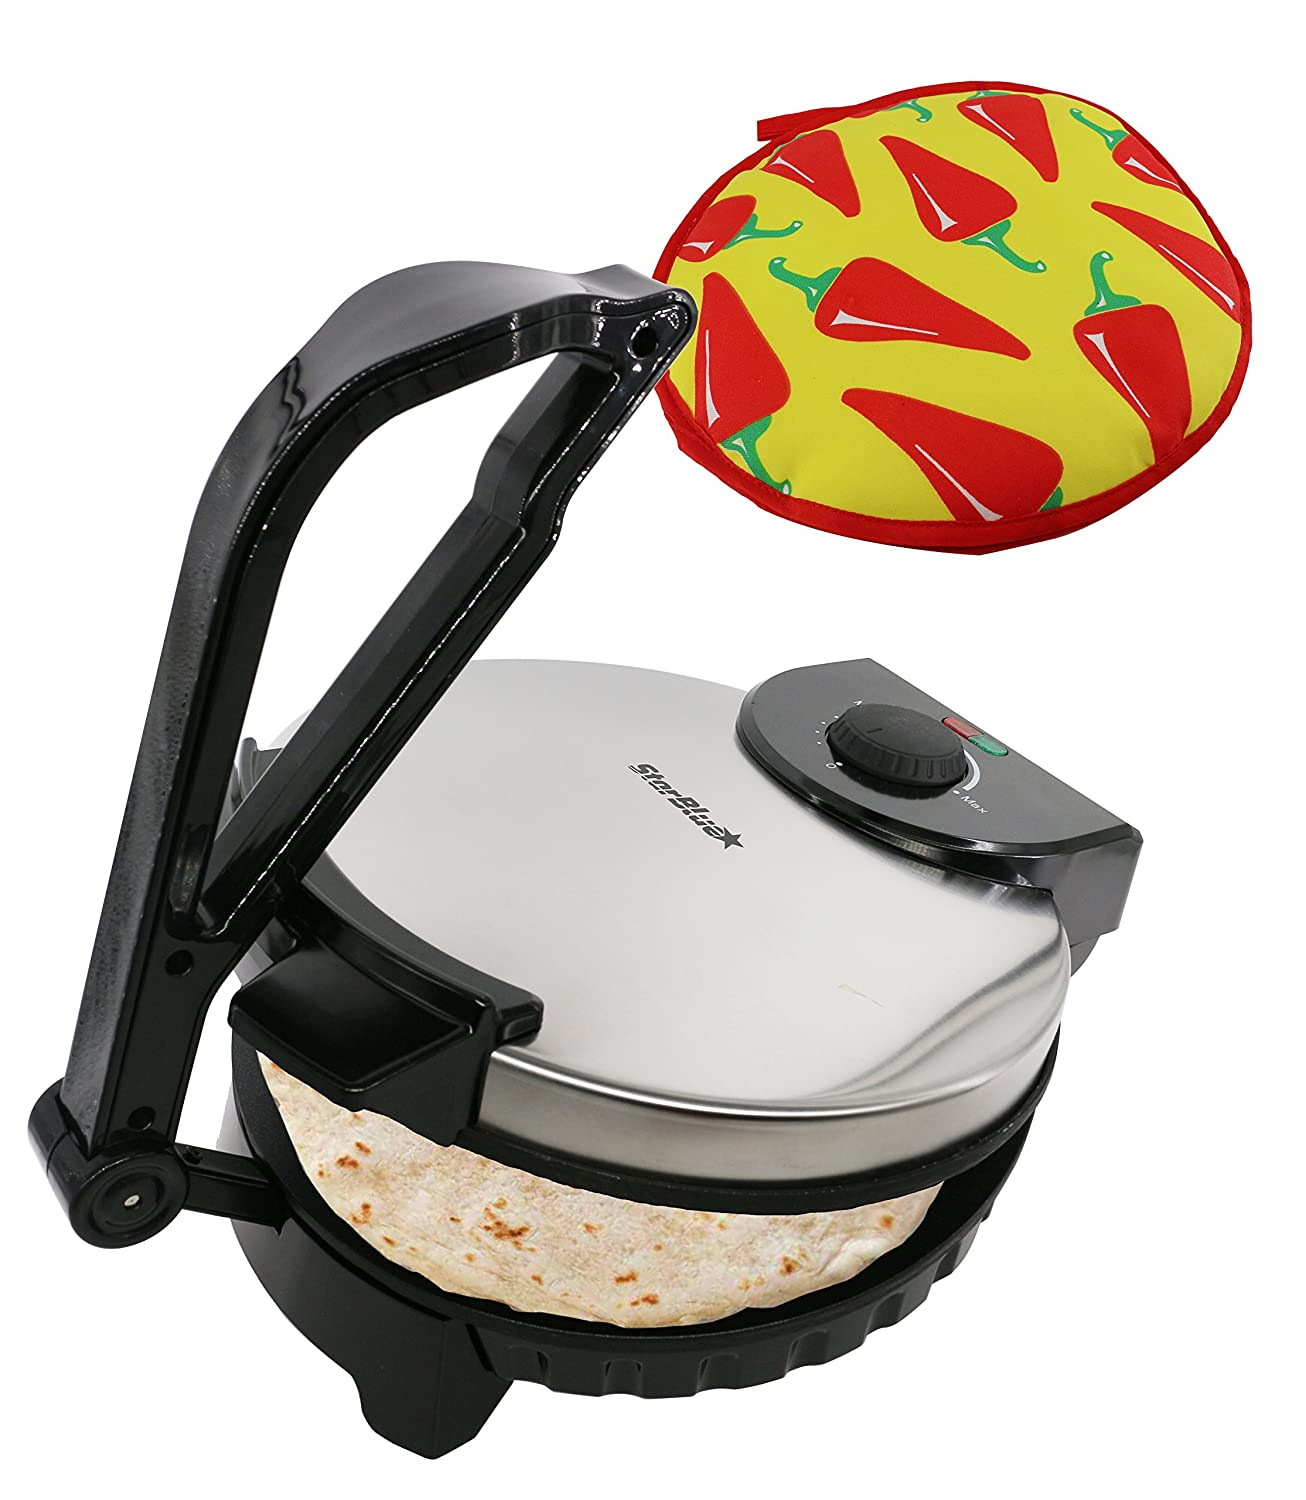 10inch Roti Maker by StarBlue with FREE Roti Warmer - The automatic Stainless Steel Non-Stick Electric machine to make Indian style Chapati, Tortilla, Roti AC 110V 50/60Hz 1200W